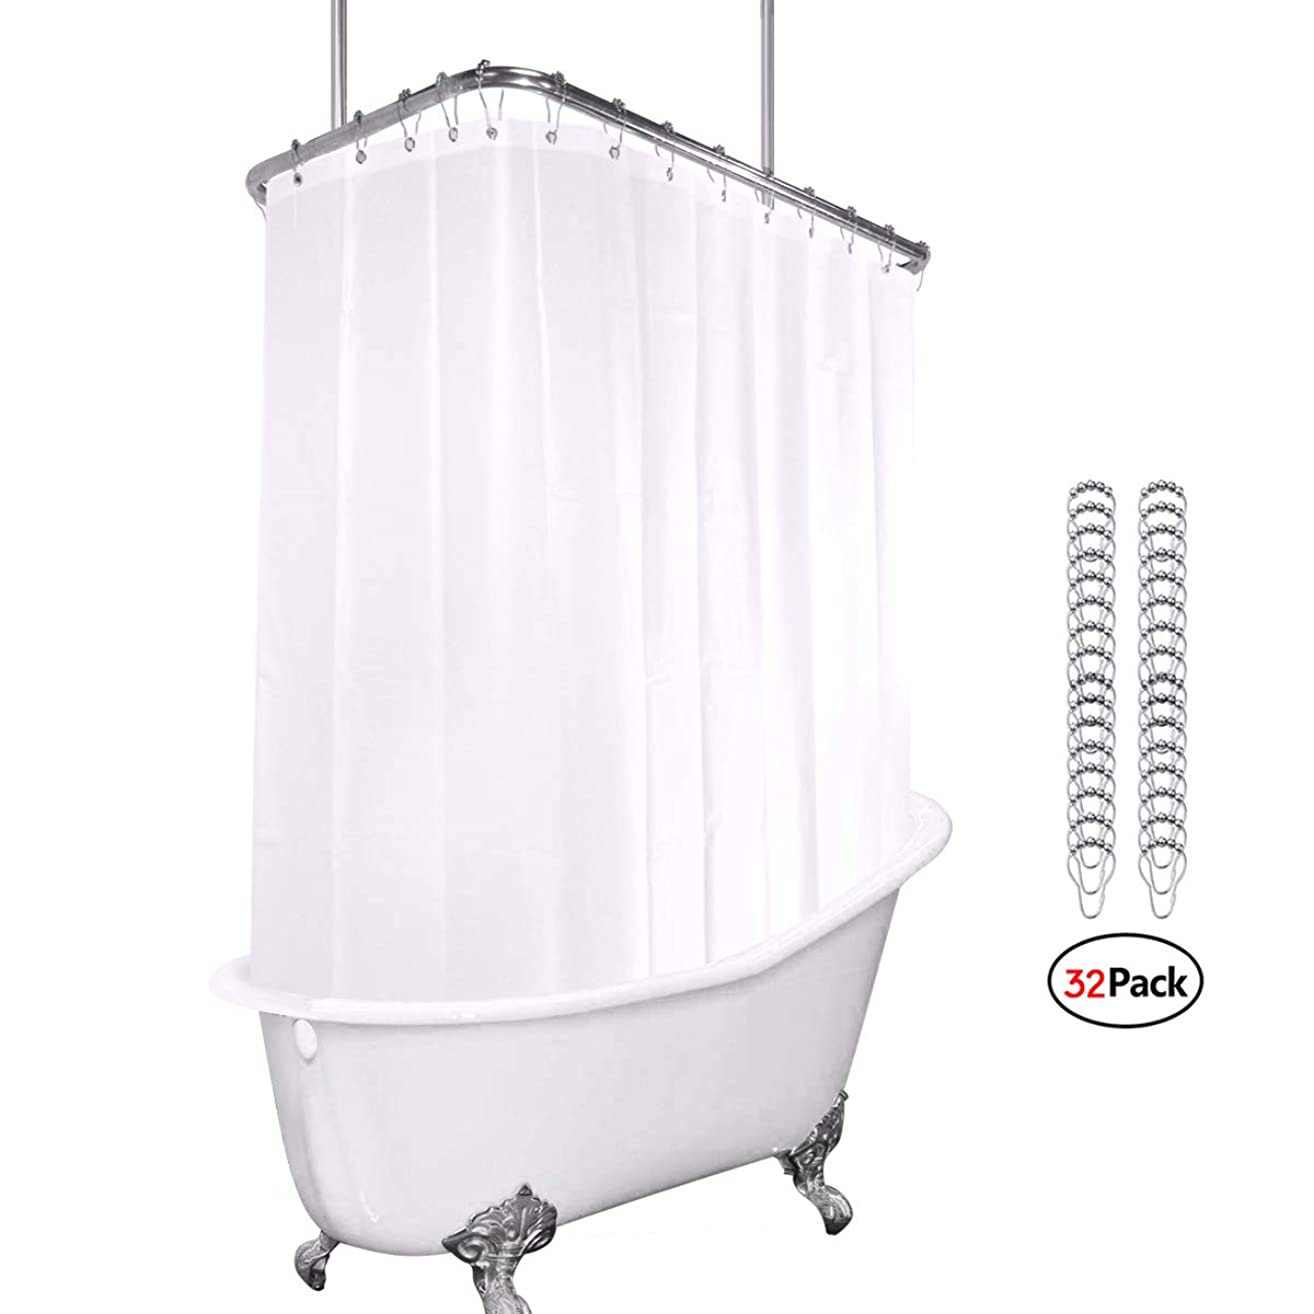 White All Around Shower Curtain Set 180 x 70 Inches PEVA Extra Wide Wrap Around Shower Panel Clawfoot Tub 32-Pack Shower Hooks Included Heavy Duty